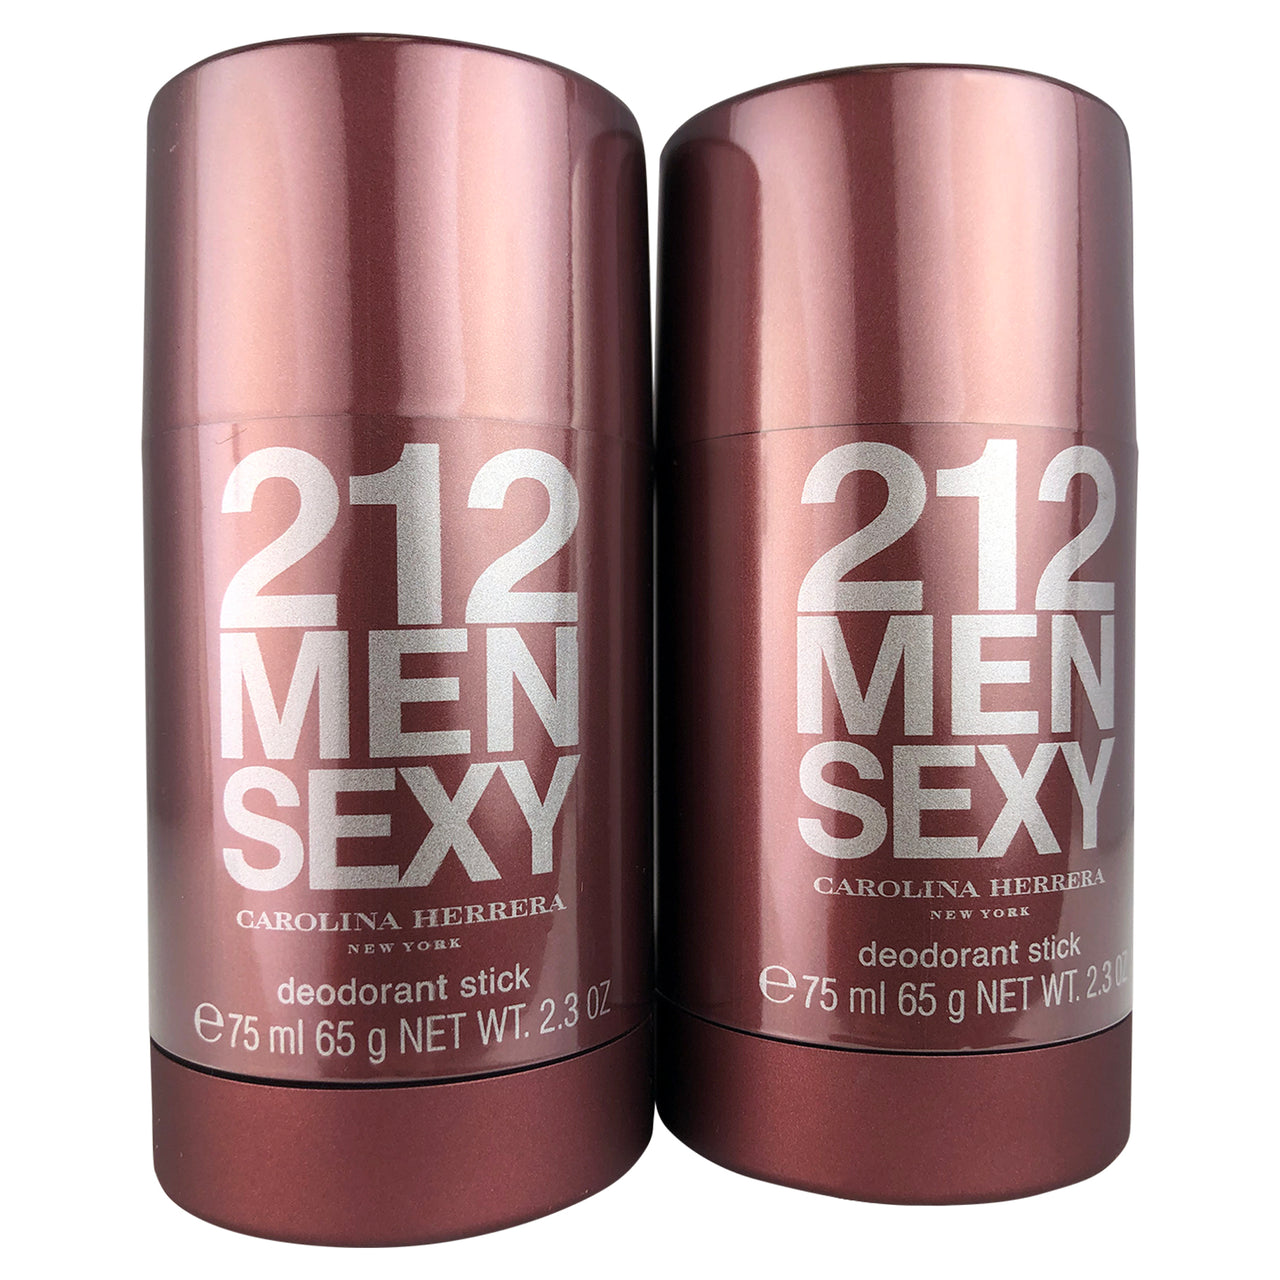 212 Men Sexy  By Caroloina Herrera Deodorant Stick 2.3 oz Each-TWO